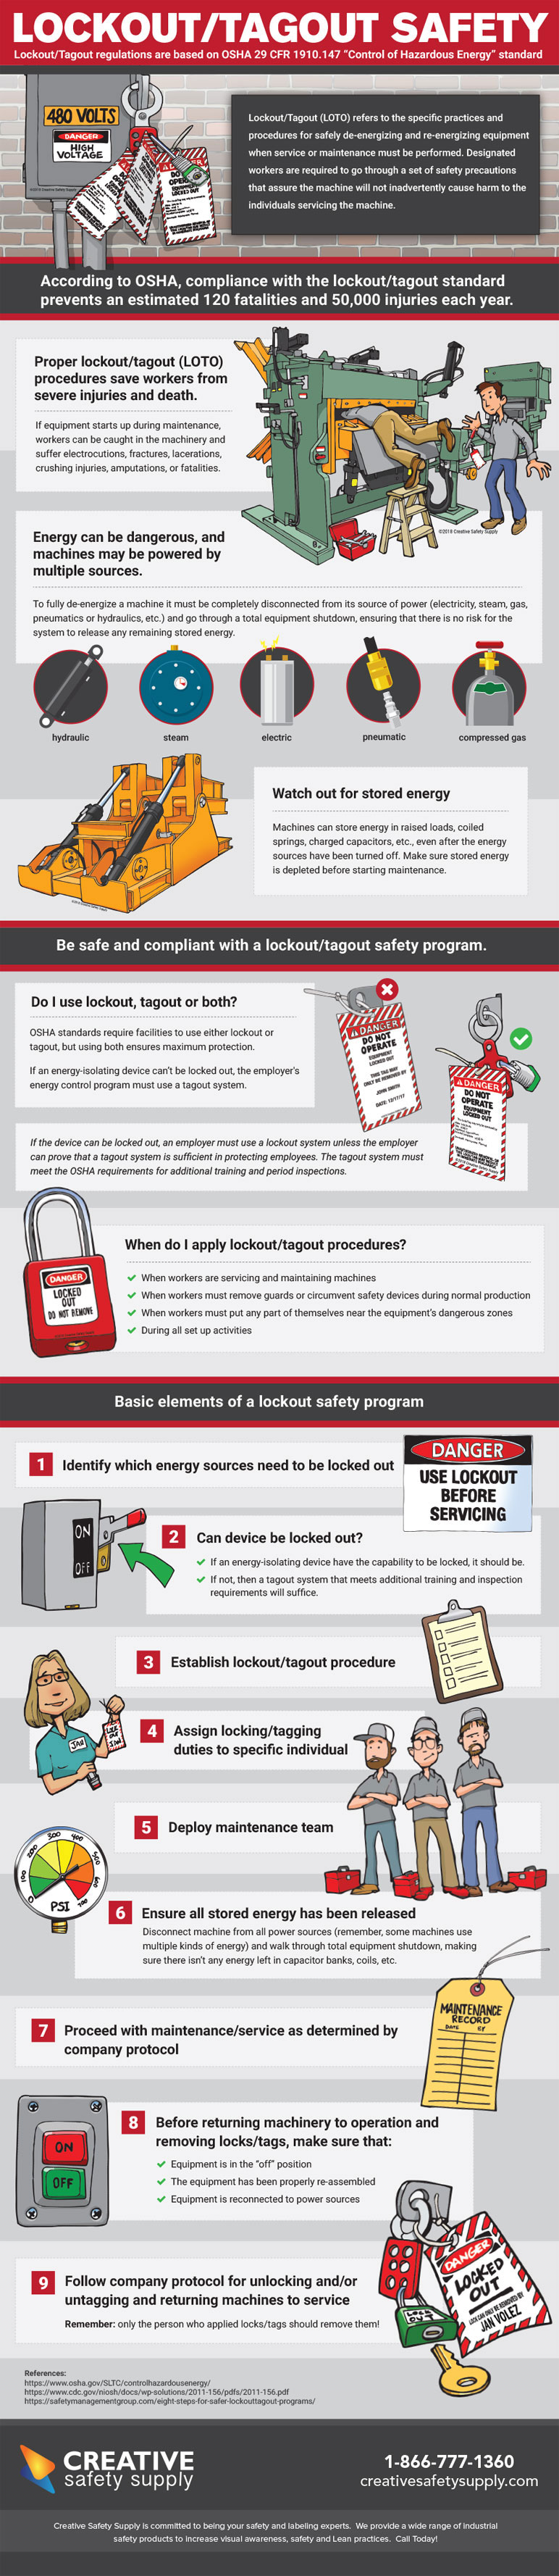 lockout-tagout-infographic.jpg